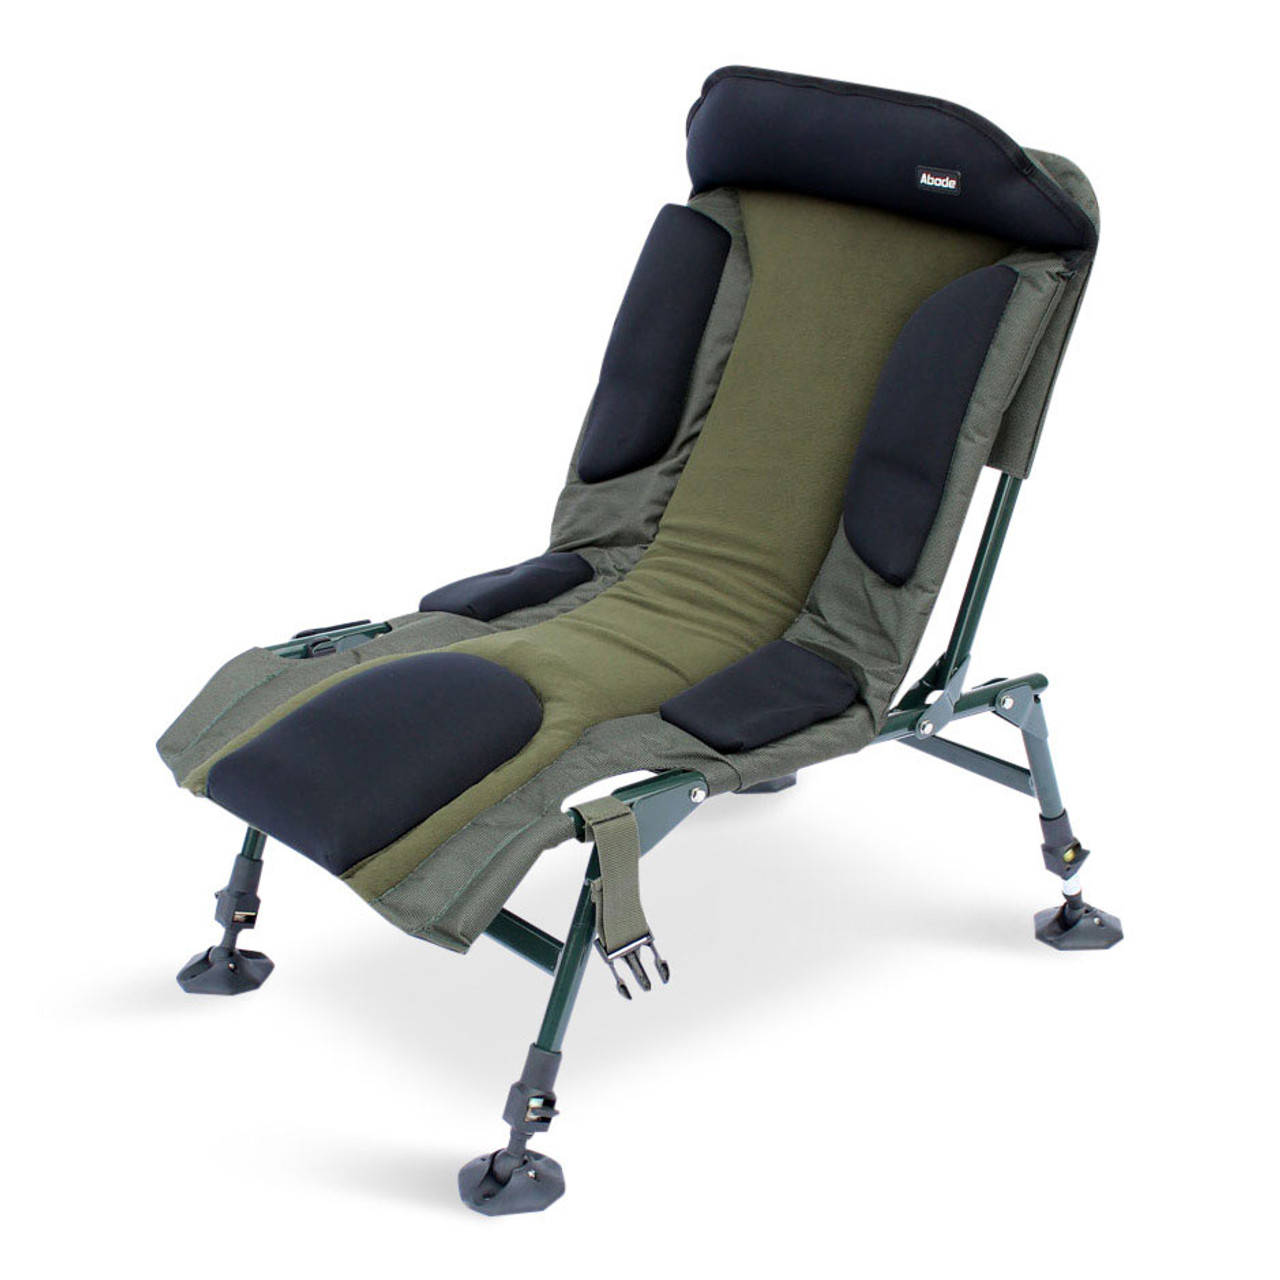 fishing chair add ons steelcase criterion abode carp camping folding sport lo koala